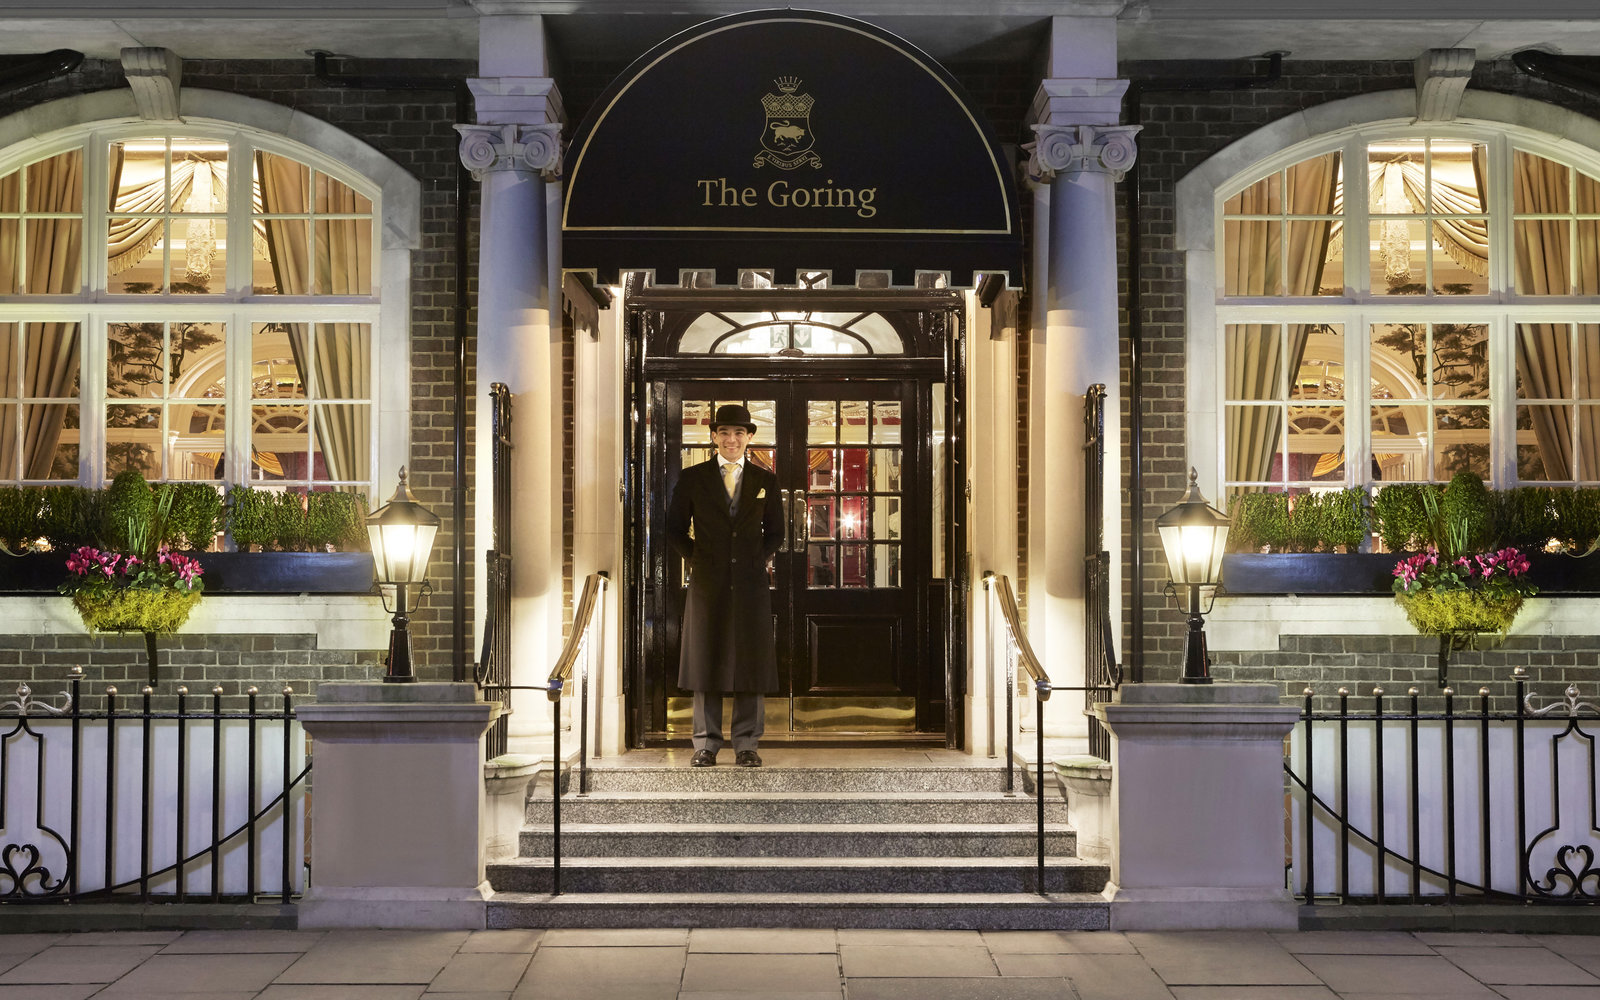 The Goring London England